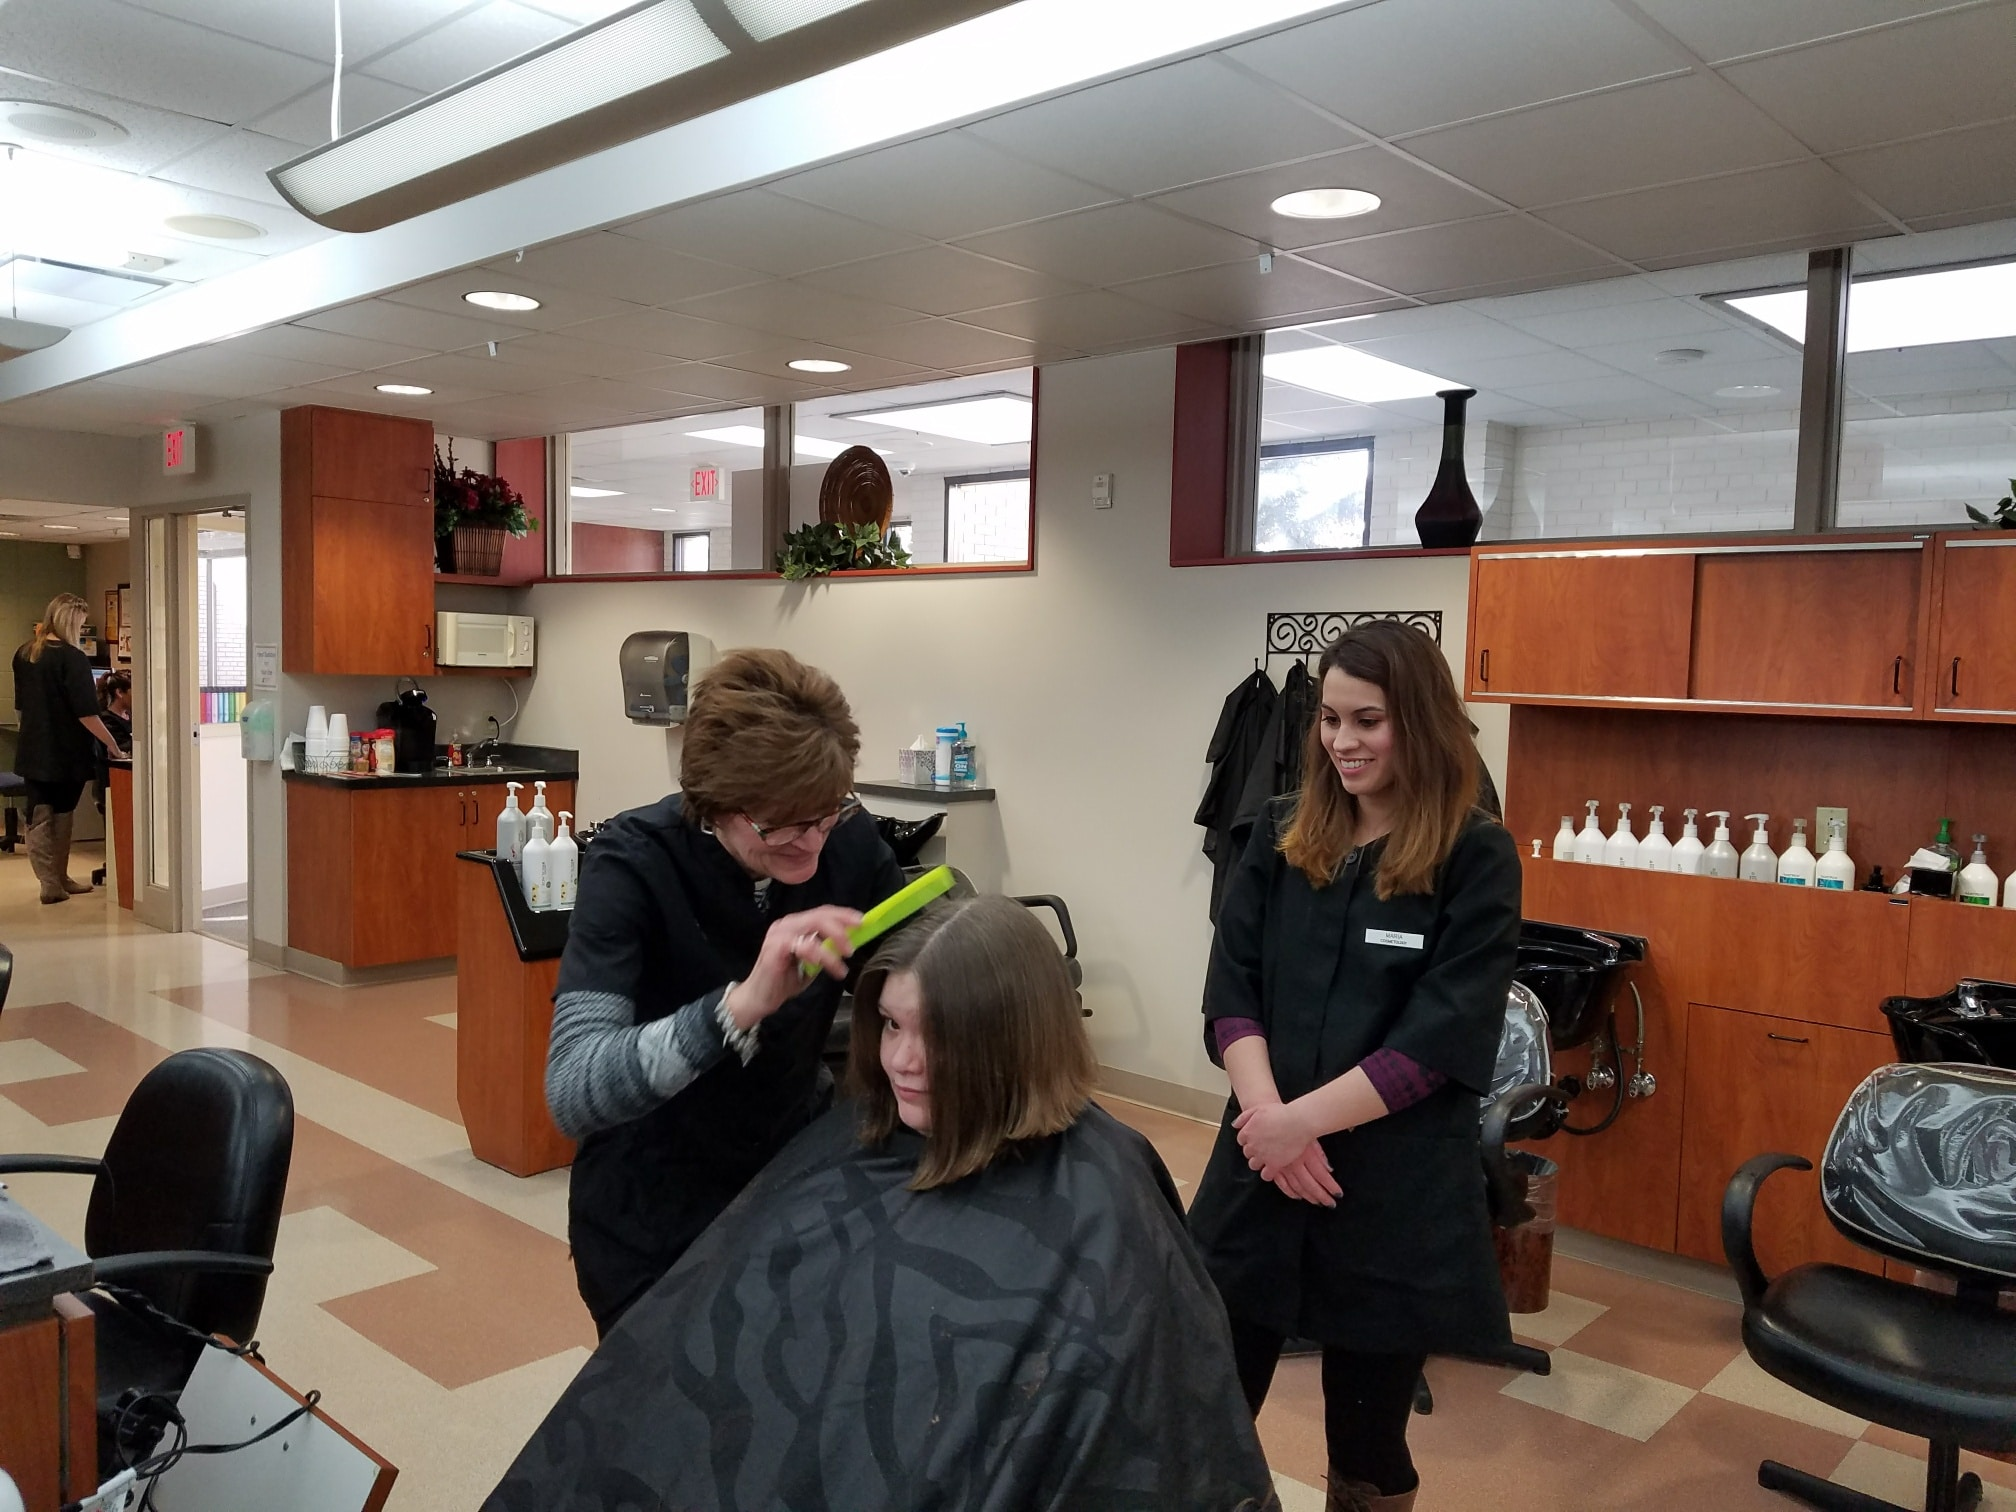 Cosmo student and instructor performing haircut on client